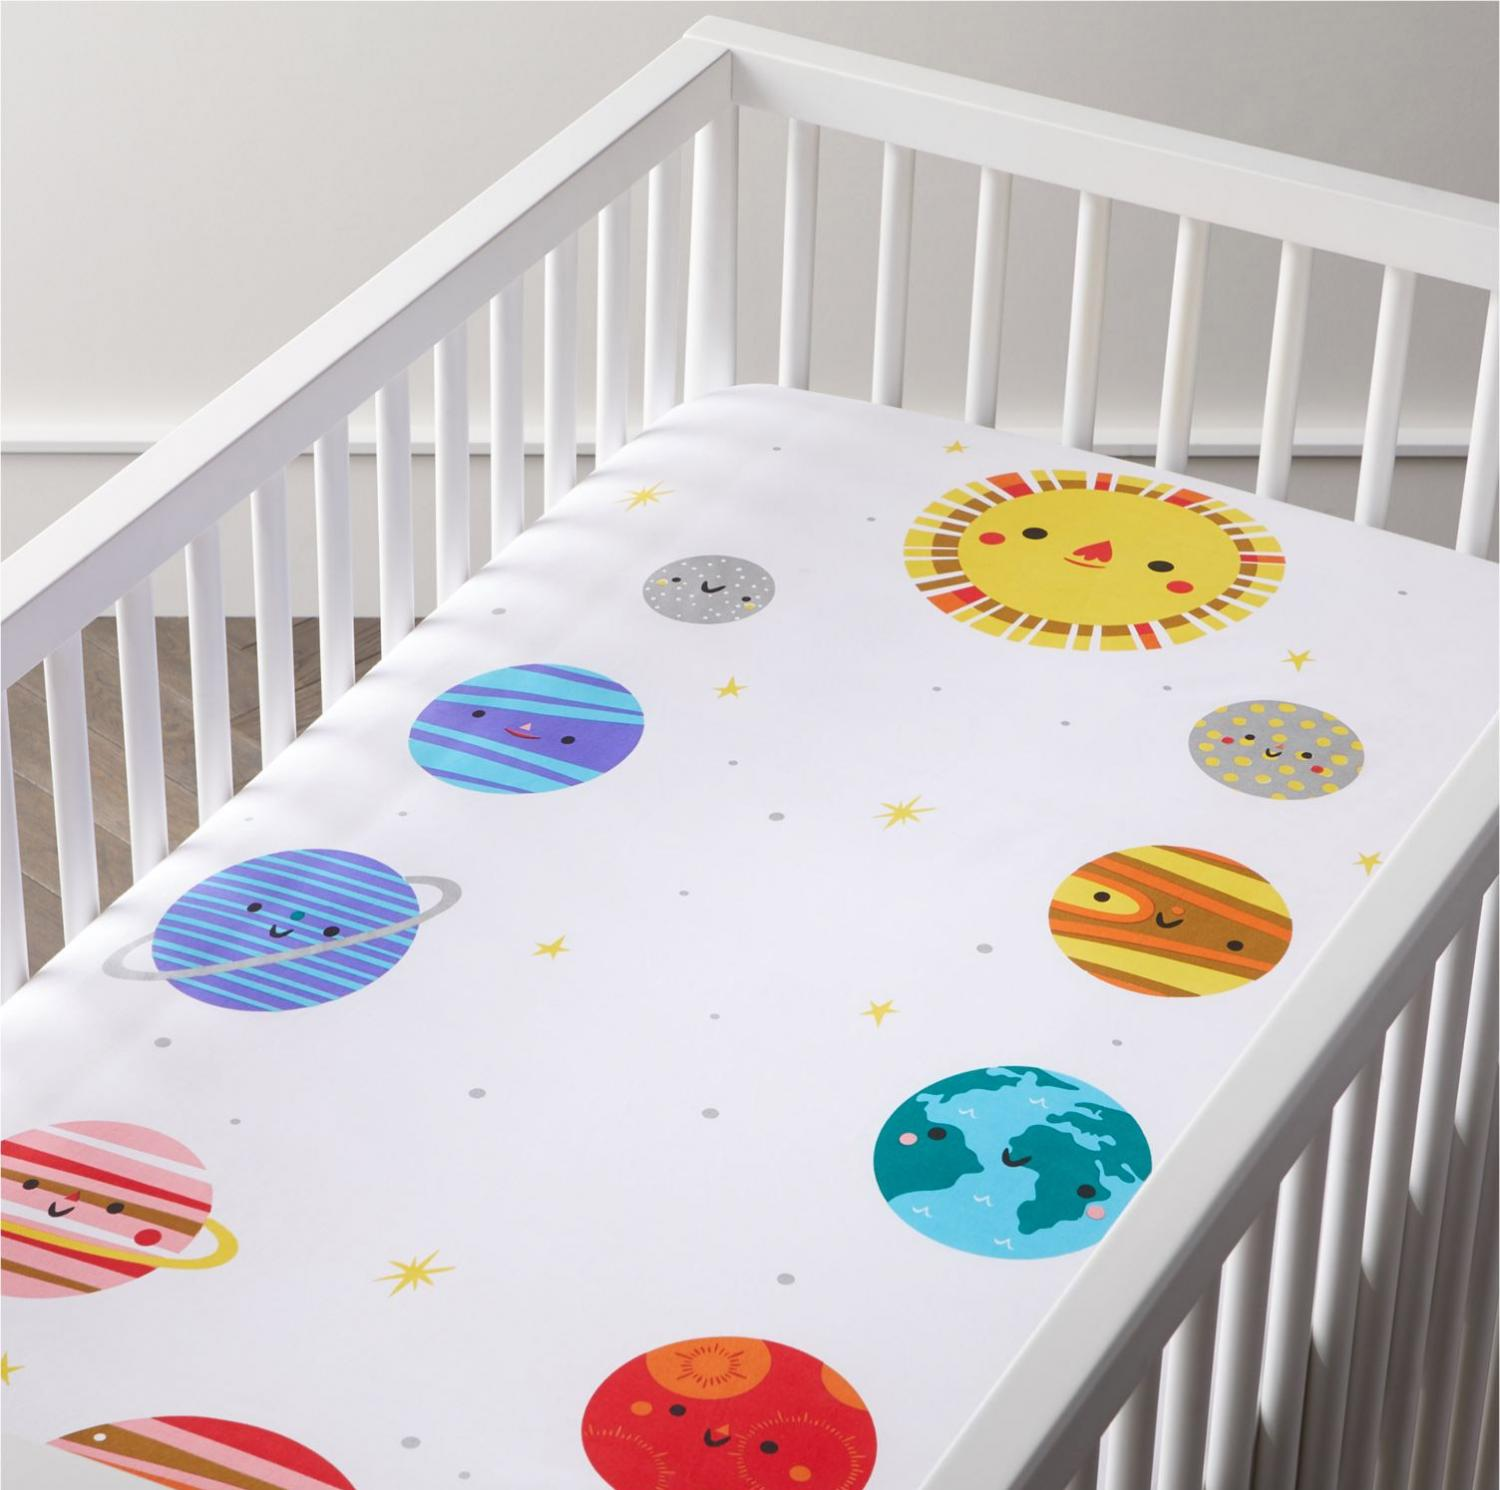 Space themed crib sheets - Helps babies and kids learn about space